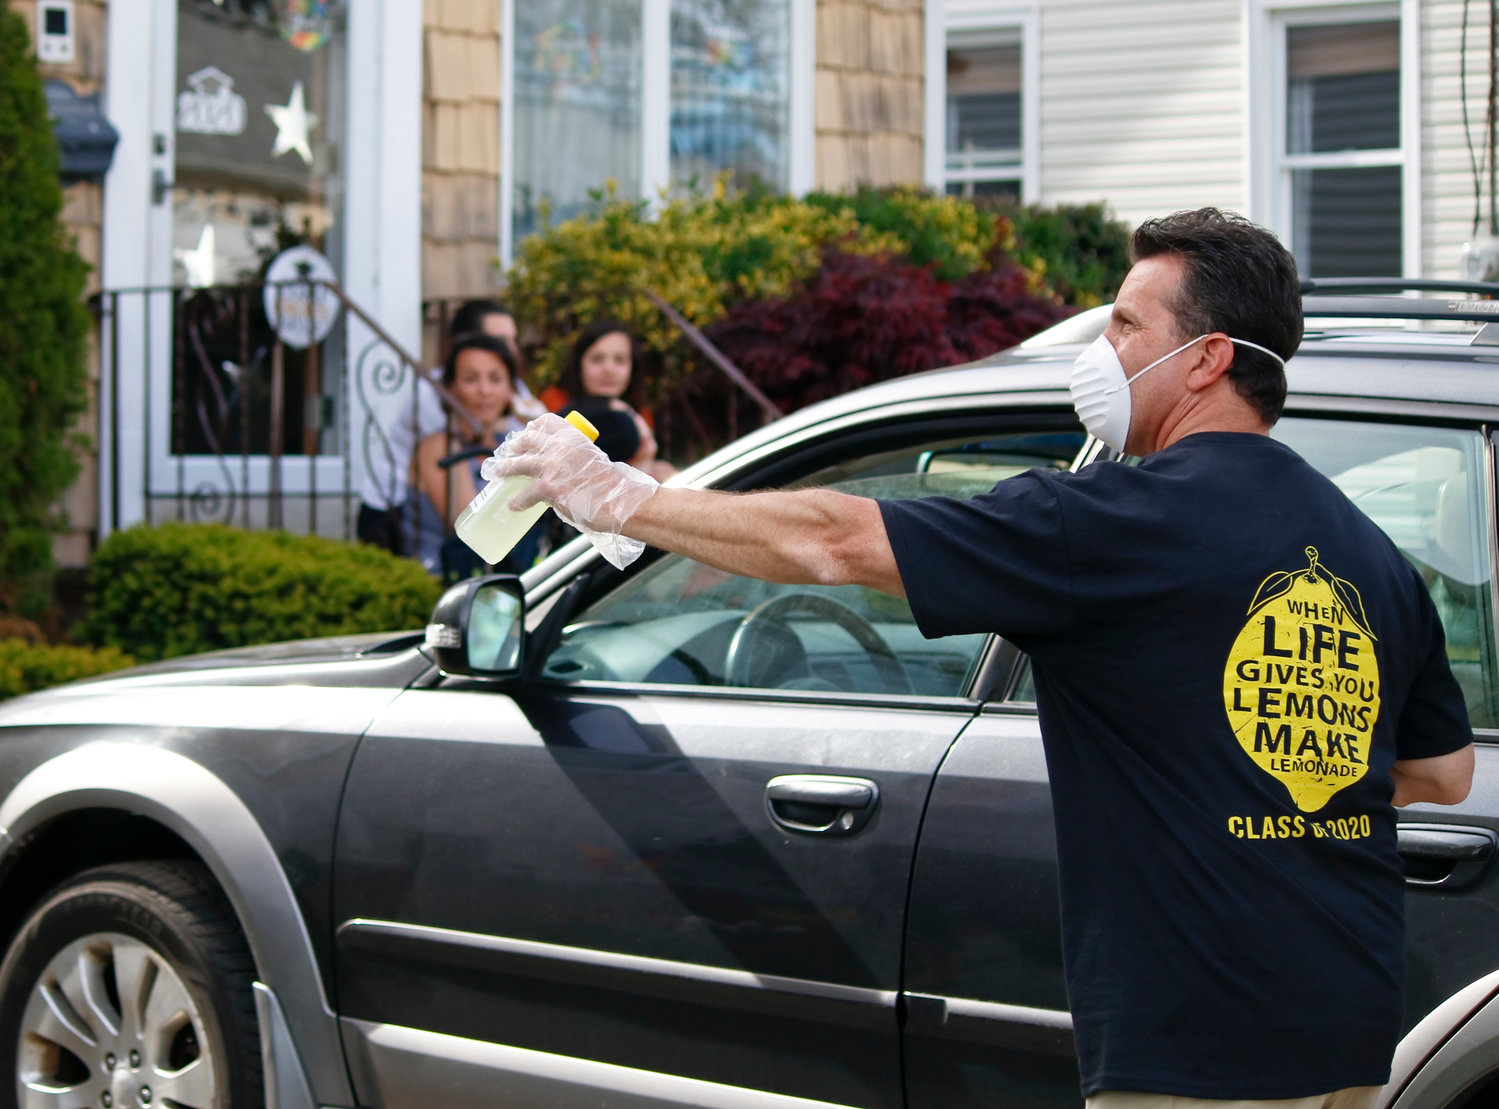 Carey High School Principal Christopher Fiore distributed lemonade to seniors and local residents along the parade route.